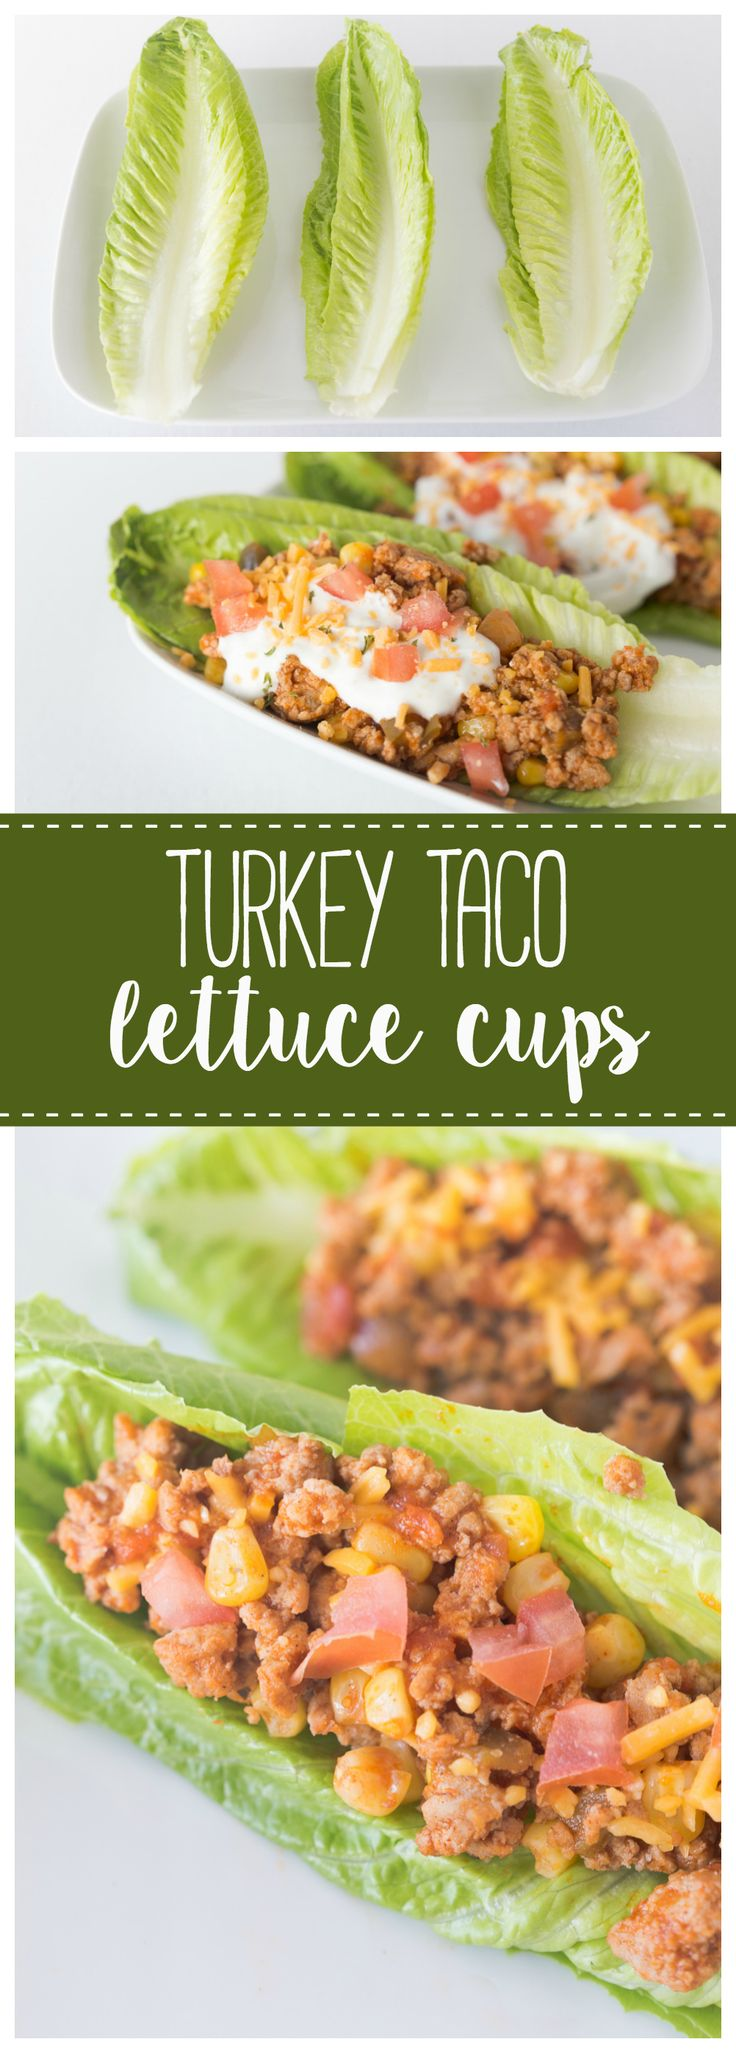 These Turkey Taco Lettuce Wraps are a delicious and low carb meal to start your year off right! www.madetobeamomma.com